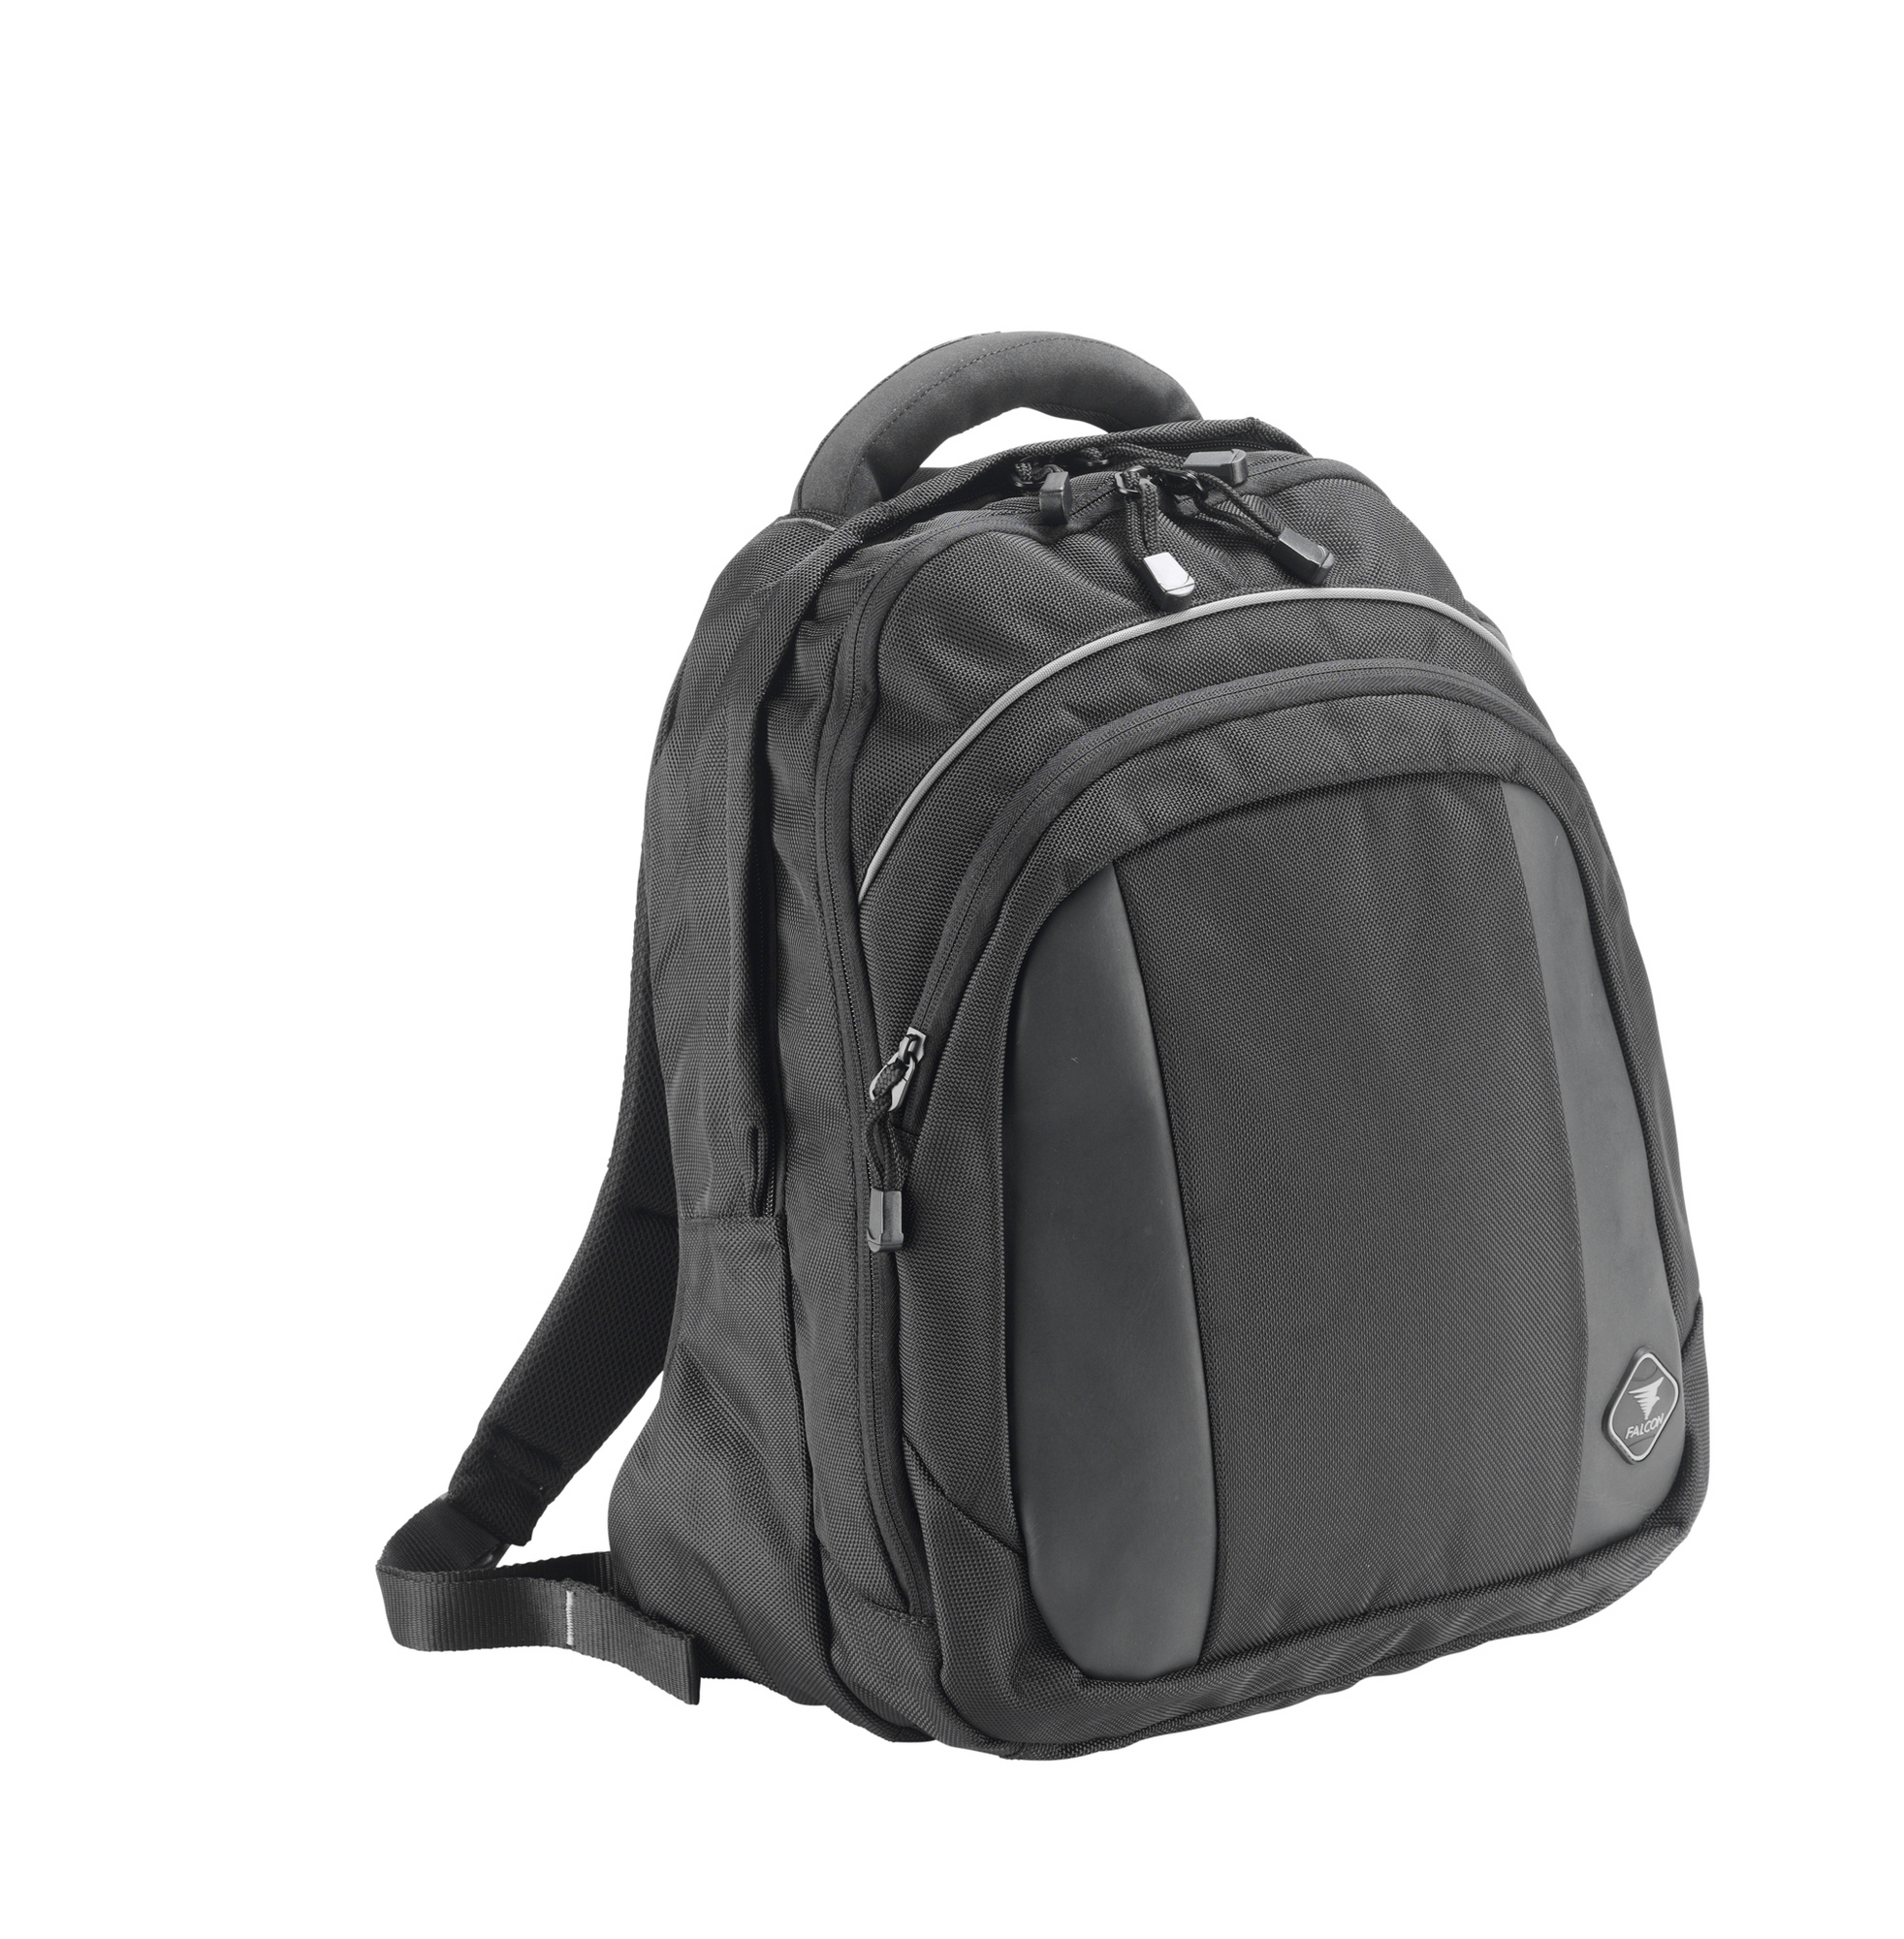 Falcon Bags Black Business Laptop Backpack FI2609 for 16inch models